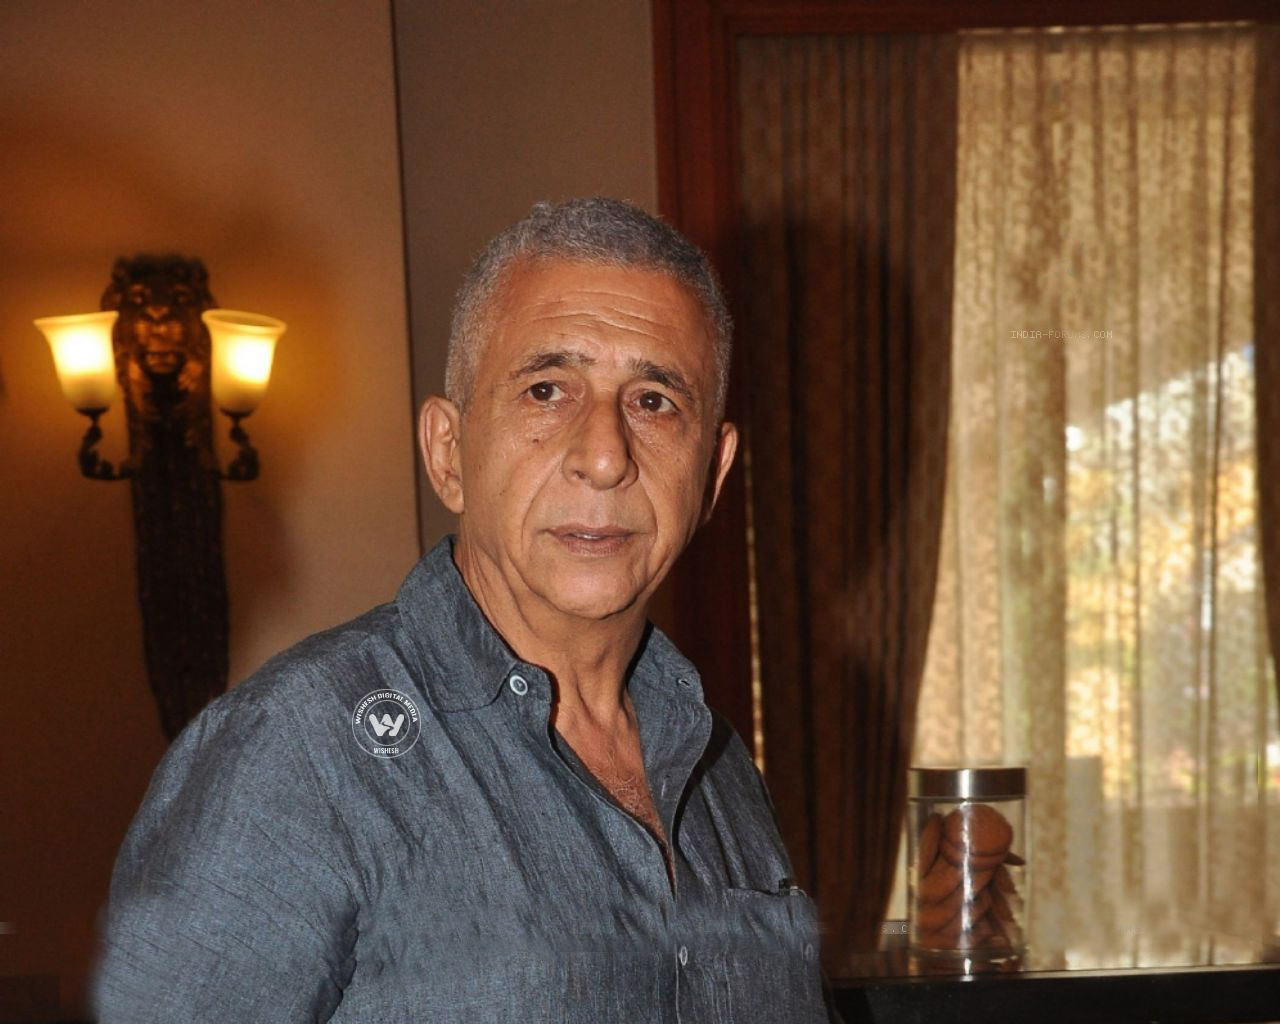 Images of Naseeruddin Shah | Naseeruddin Shah | Photo 1of 10 | Naseeruddin Shah Wallpapers